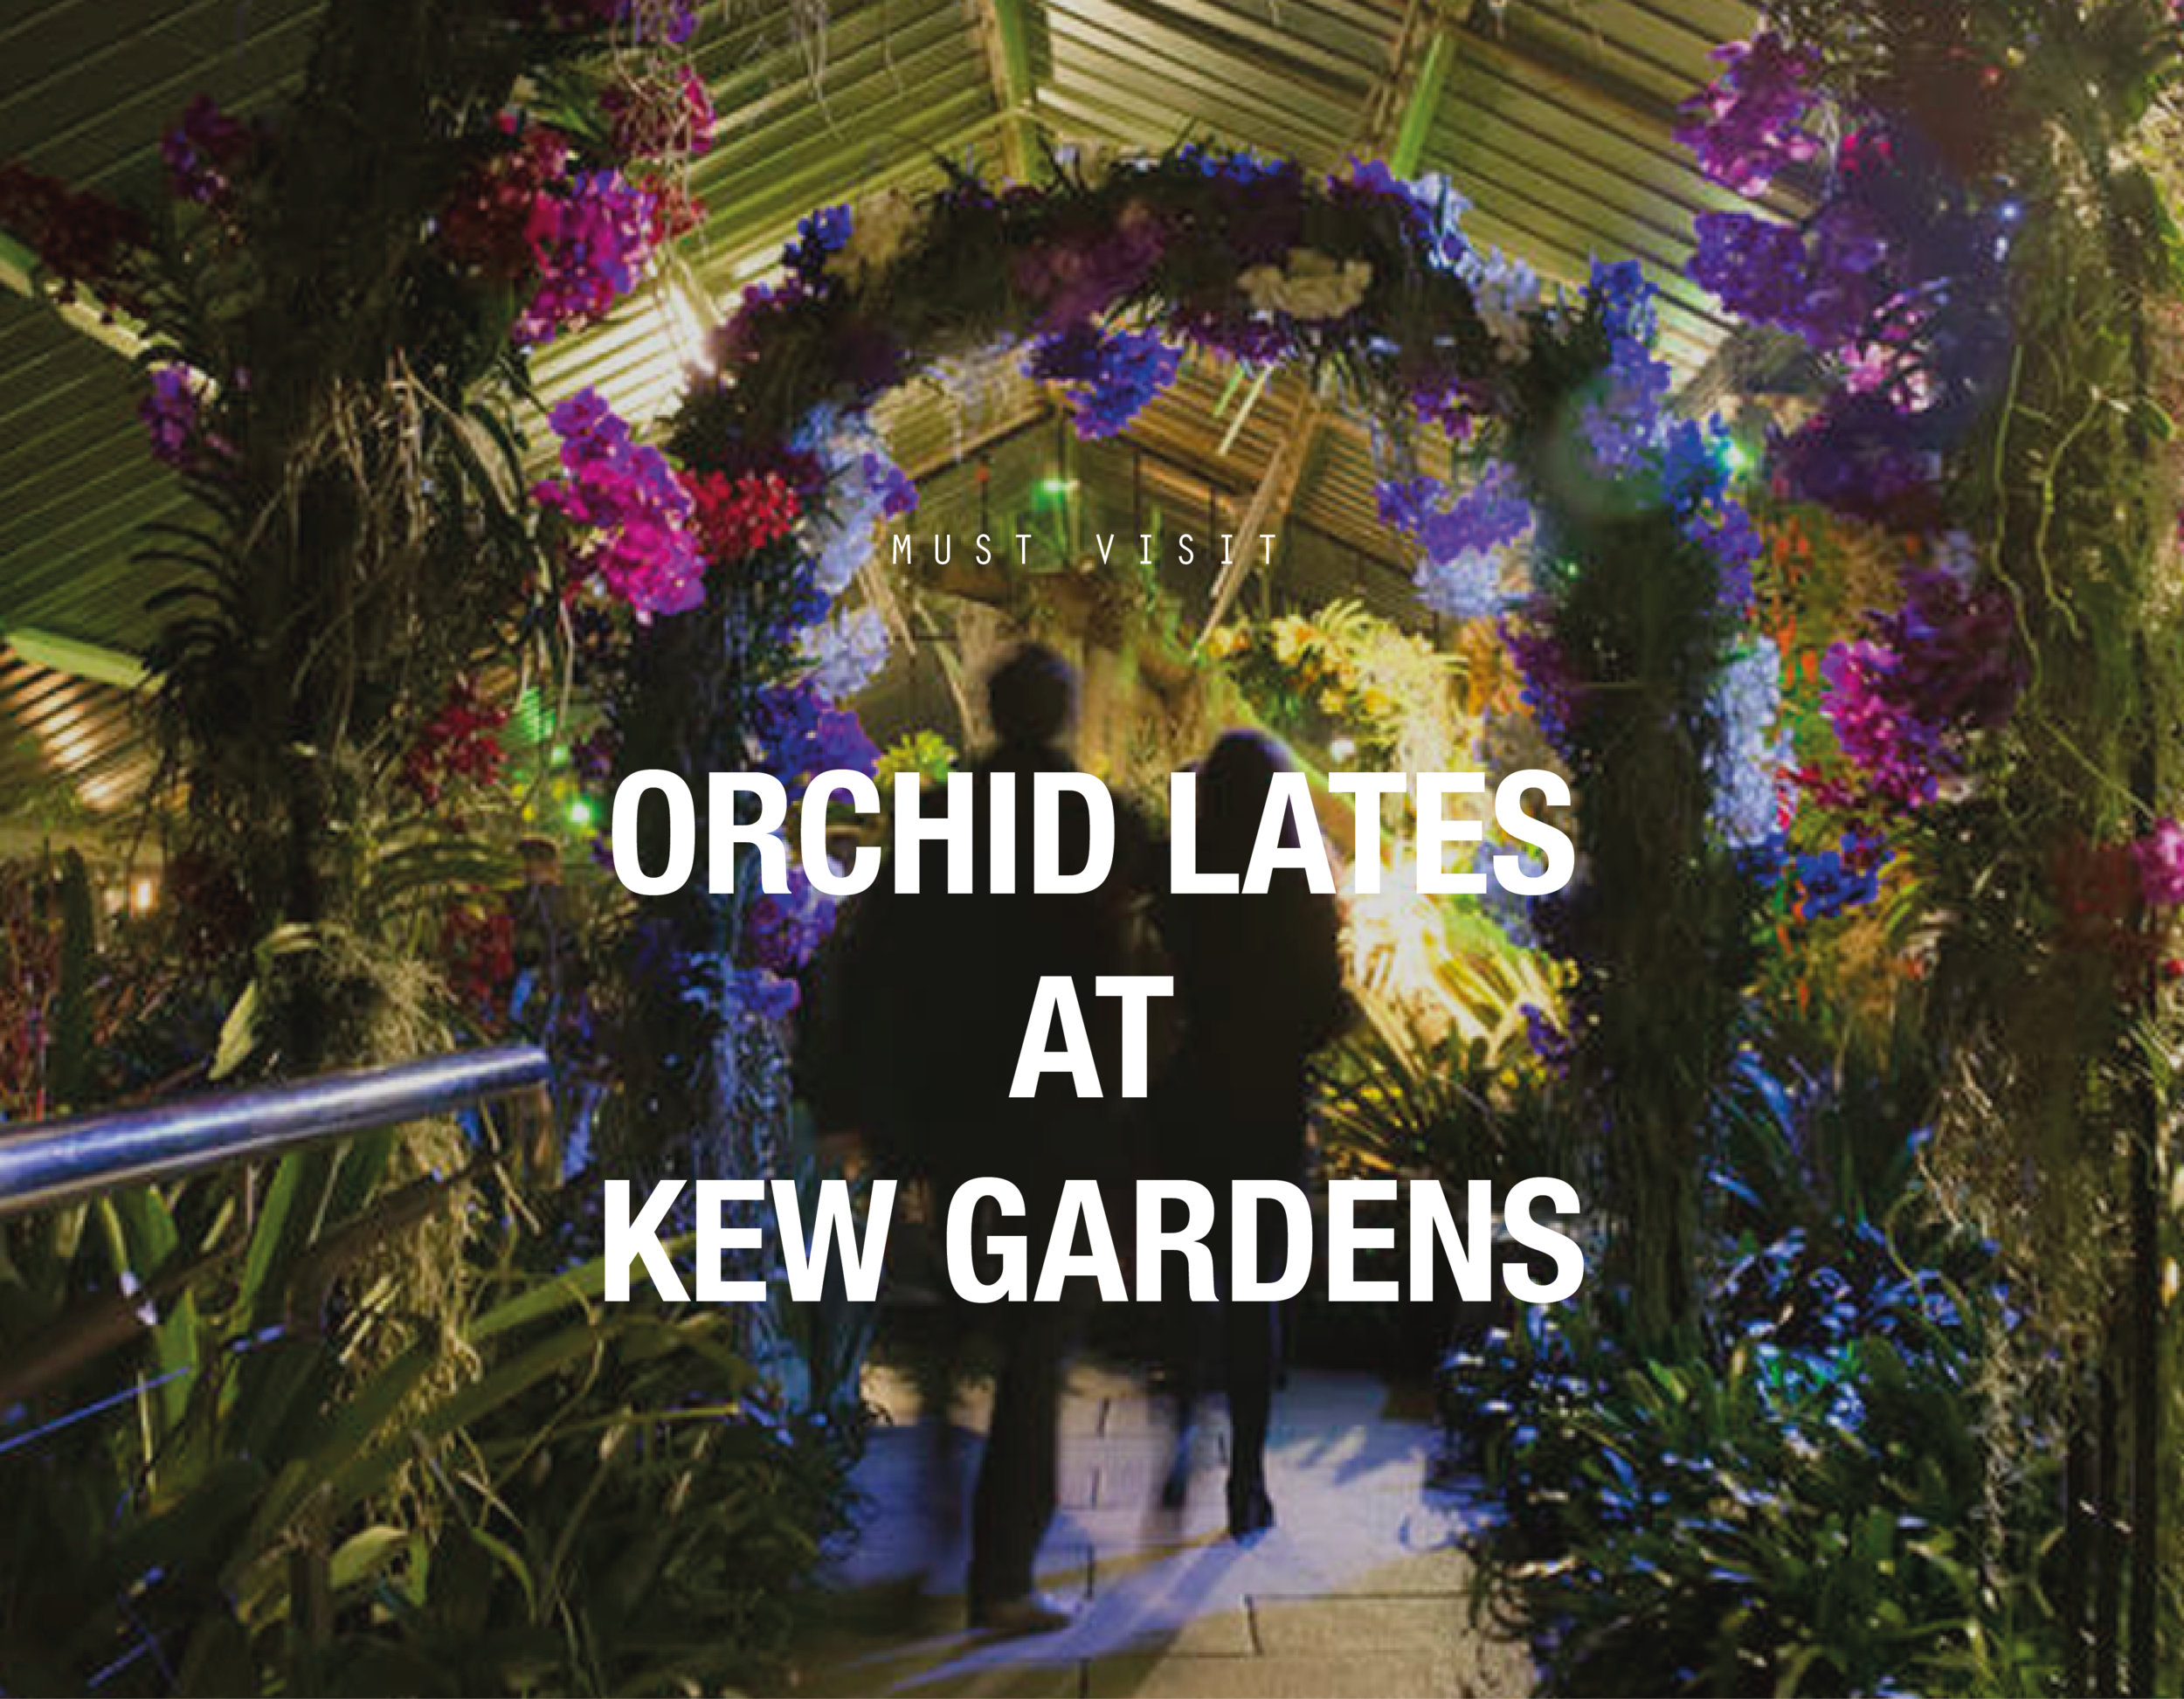 ORCHID LATES_STYLE GUIDE CAPTION.png